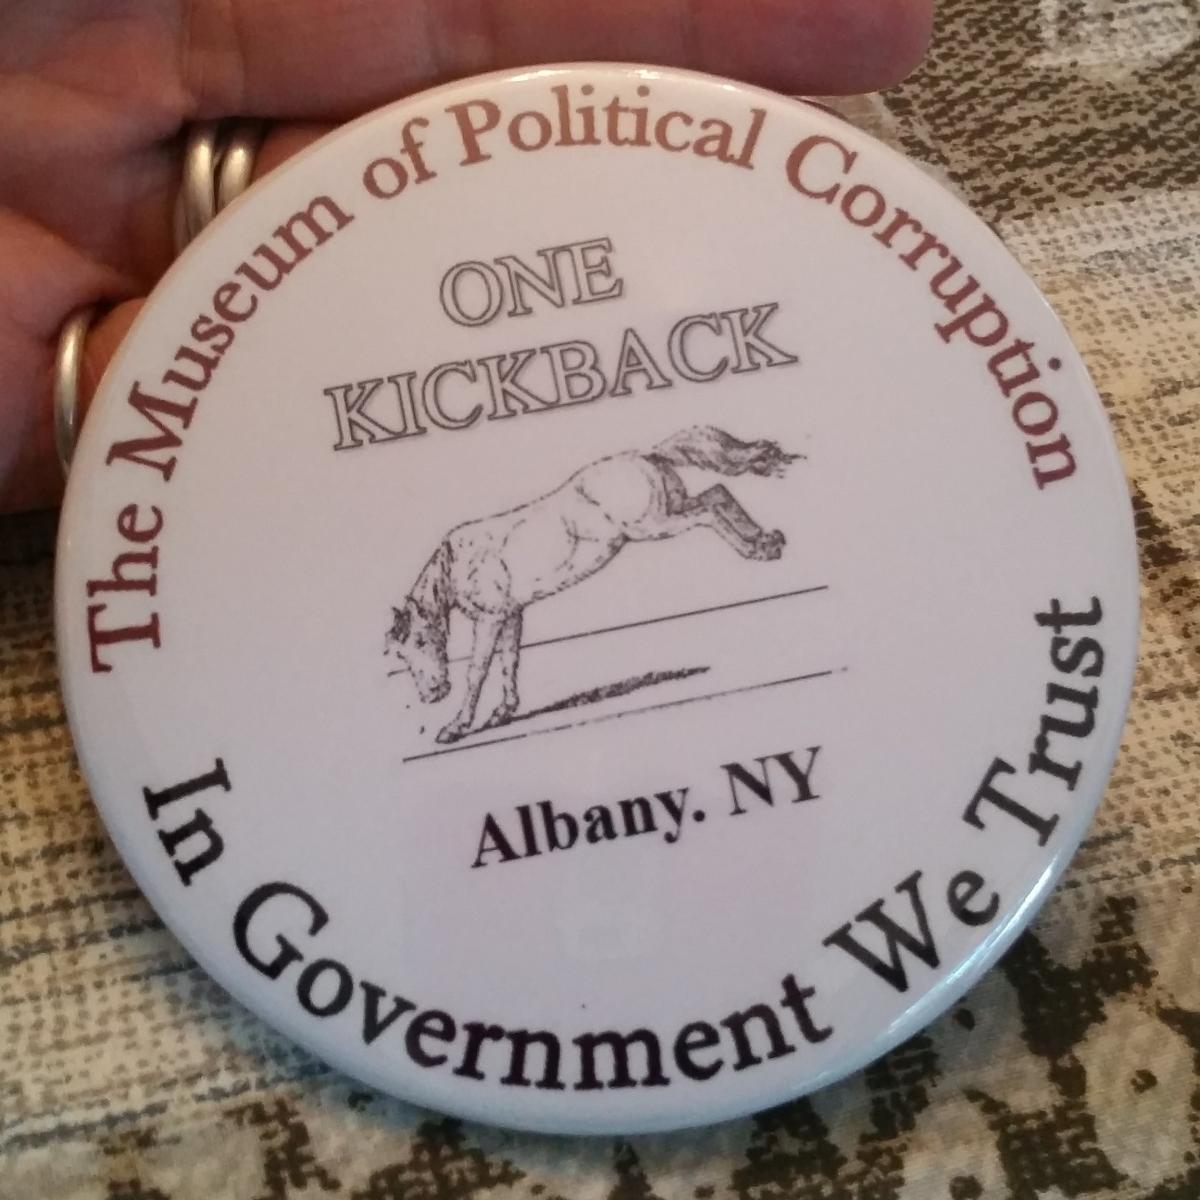 """Every member of the board for the Museum of Political Corruption received this """"kickback"""" button in their information folders at a recent meeting."""